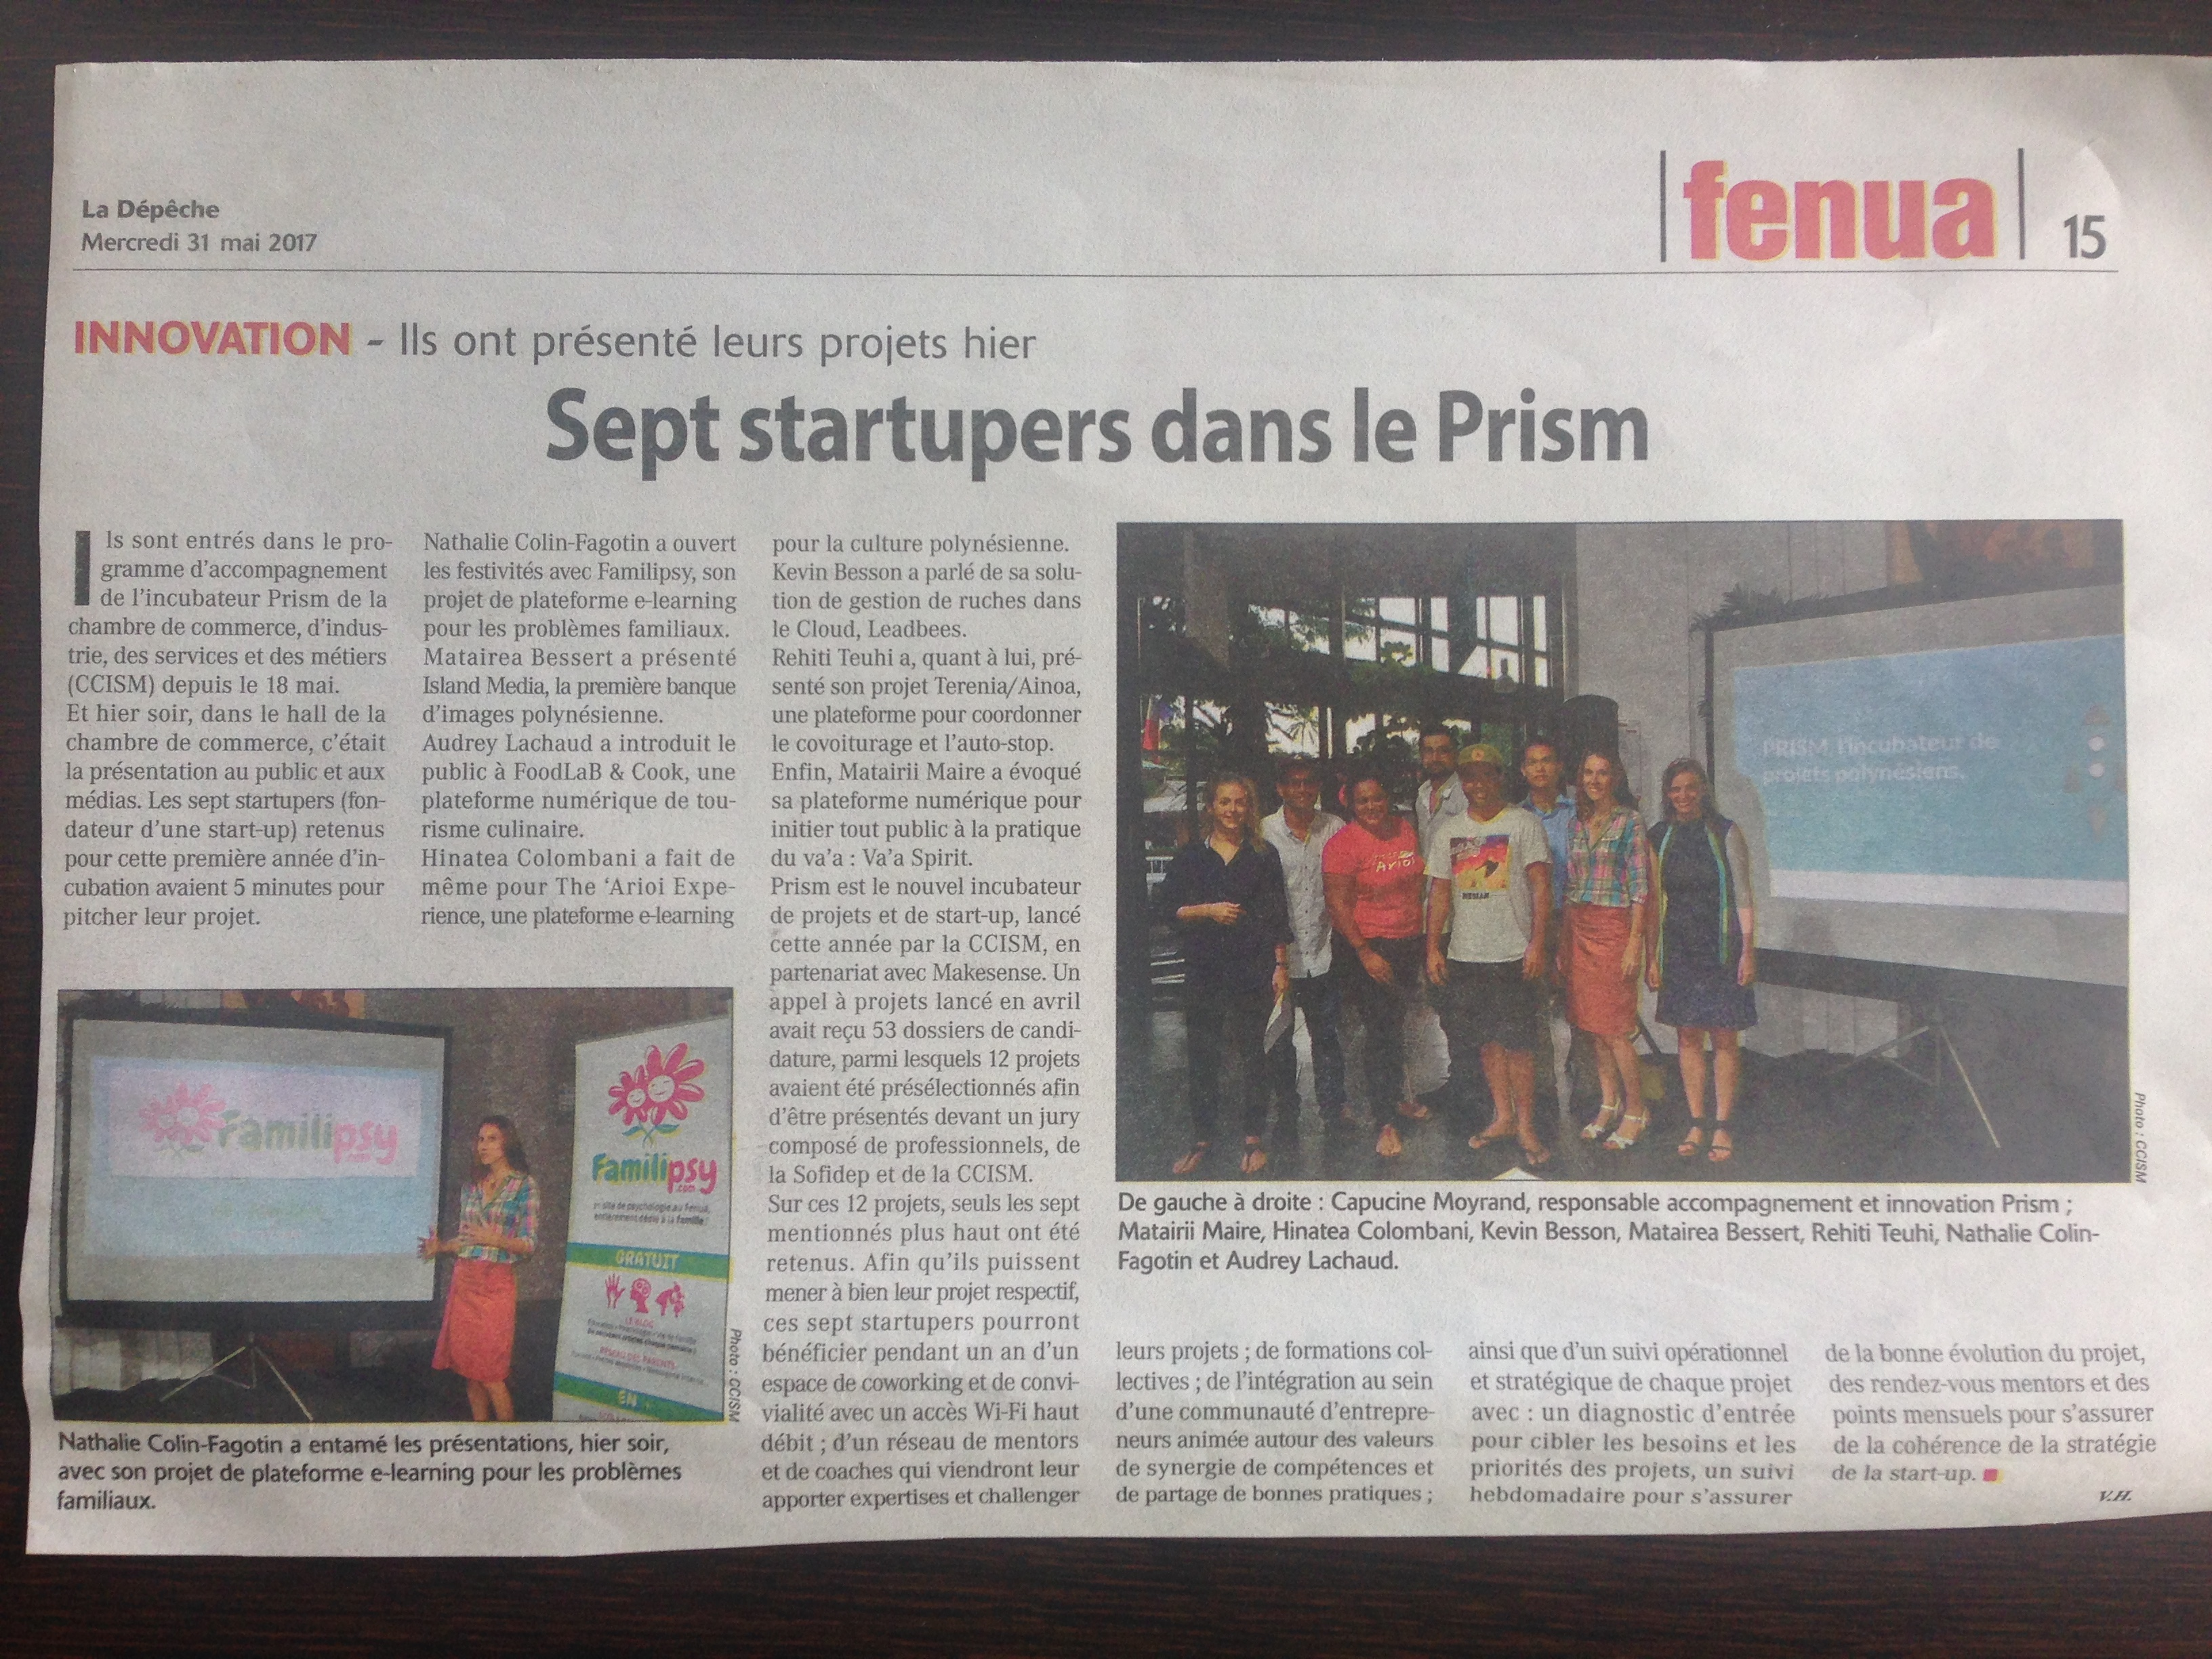 prism CCISM - Rentrée 2017 - Start-up